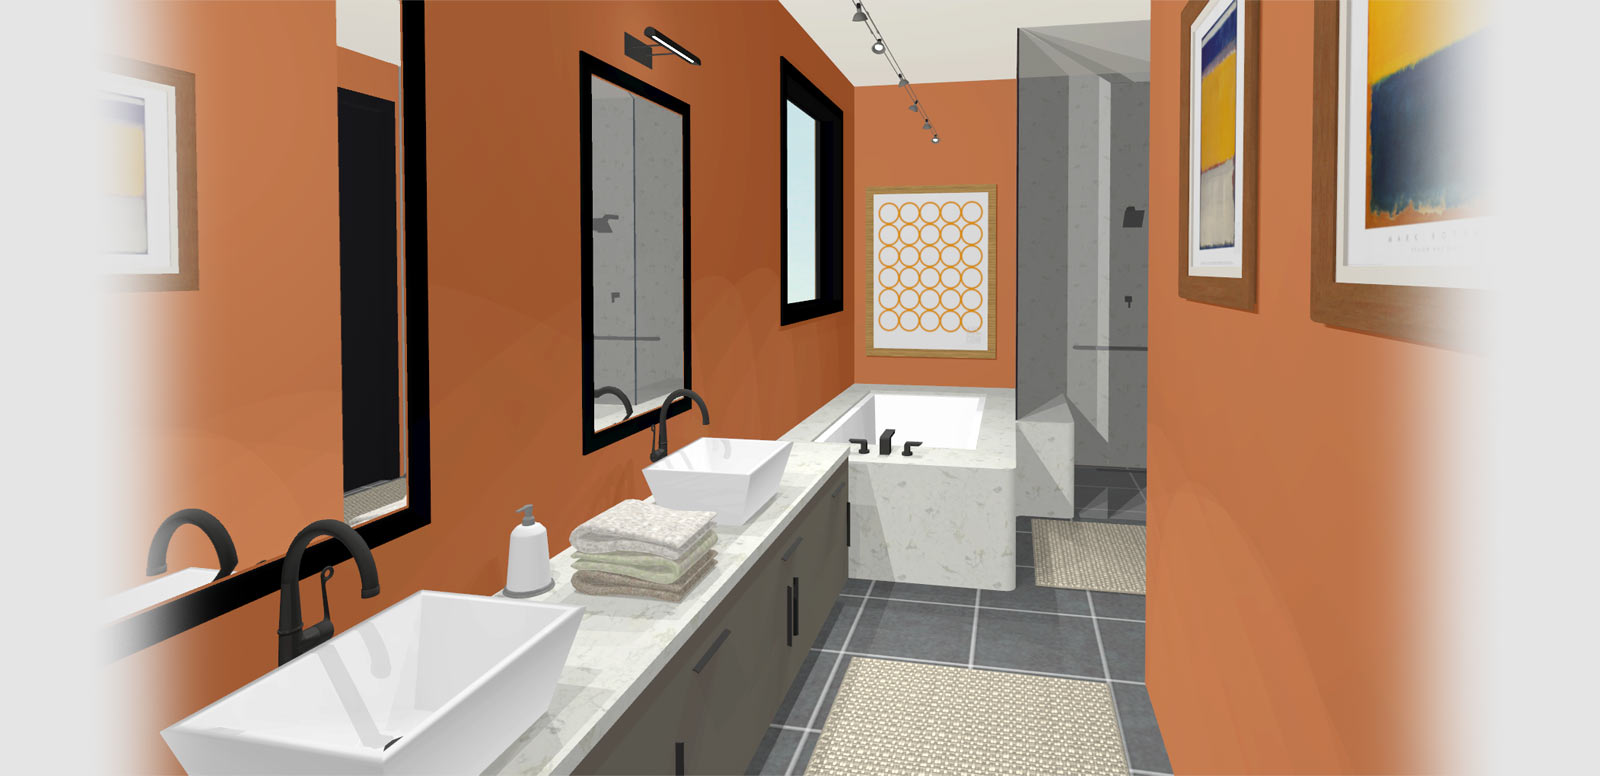 Kitchen Bathroom Design Software Home Designer Kitchen & Bath Software